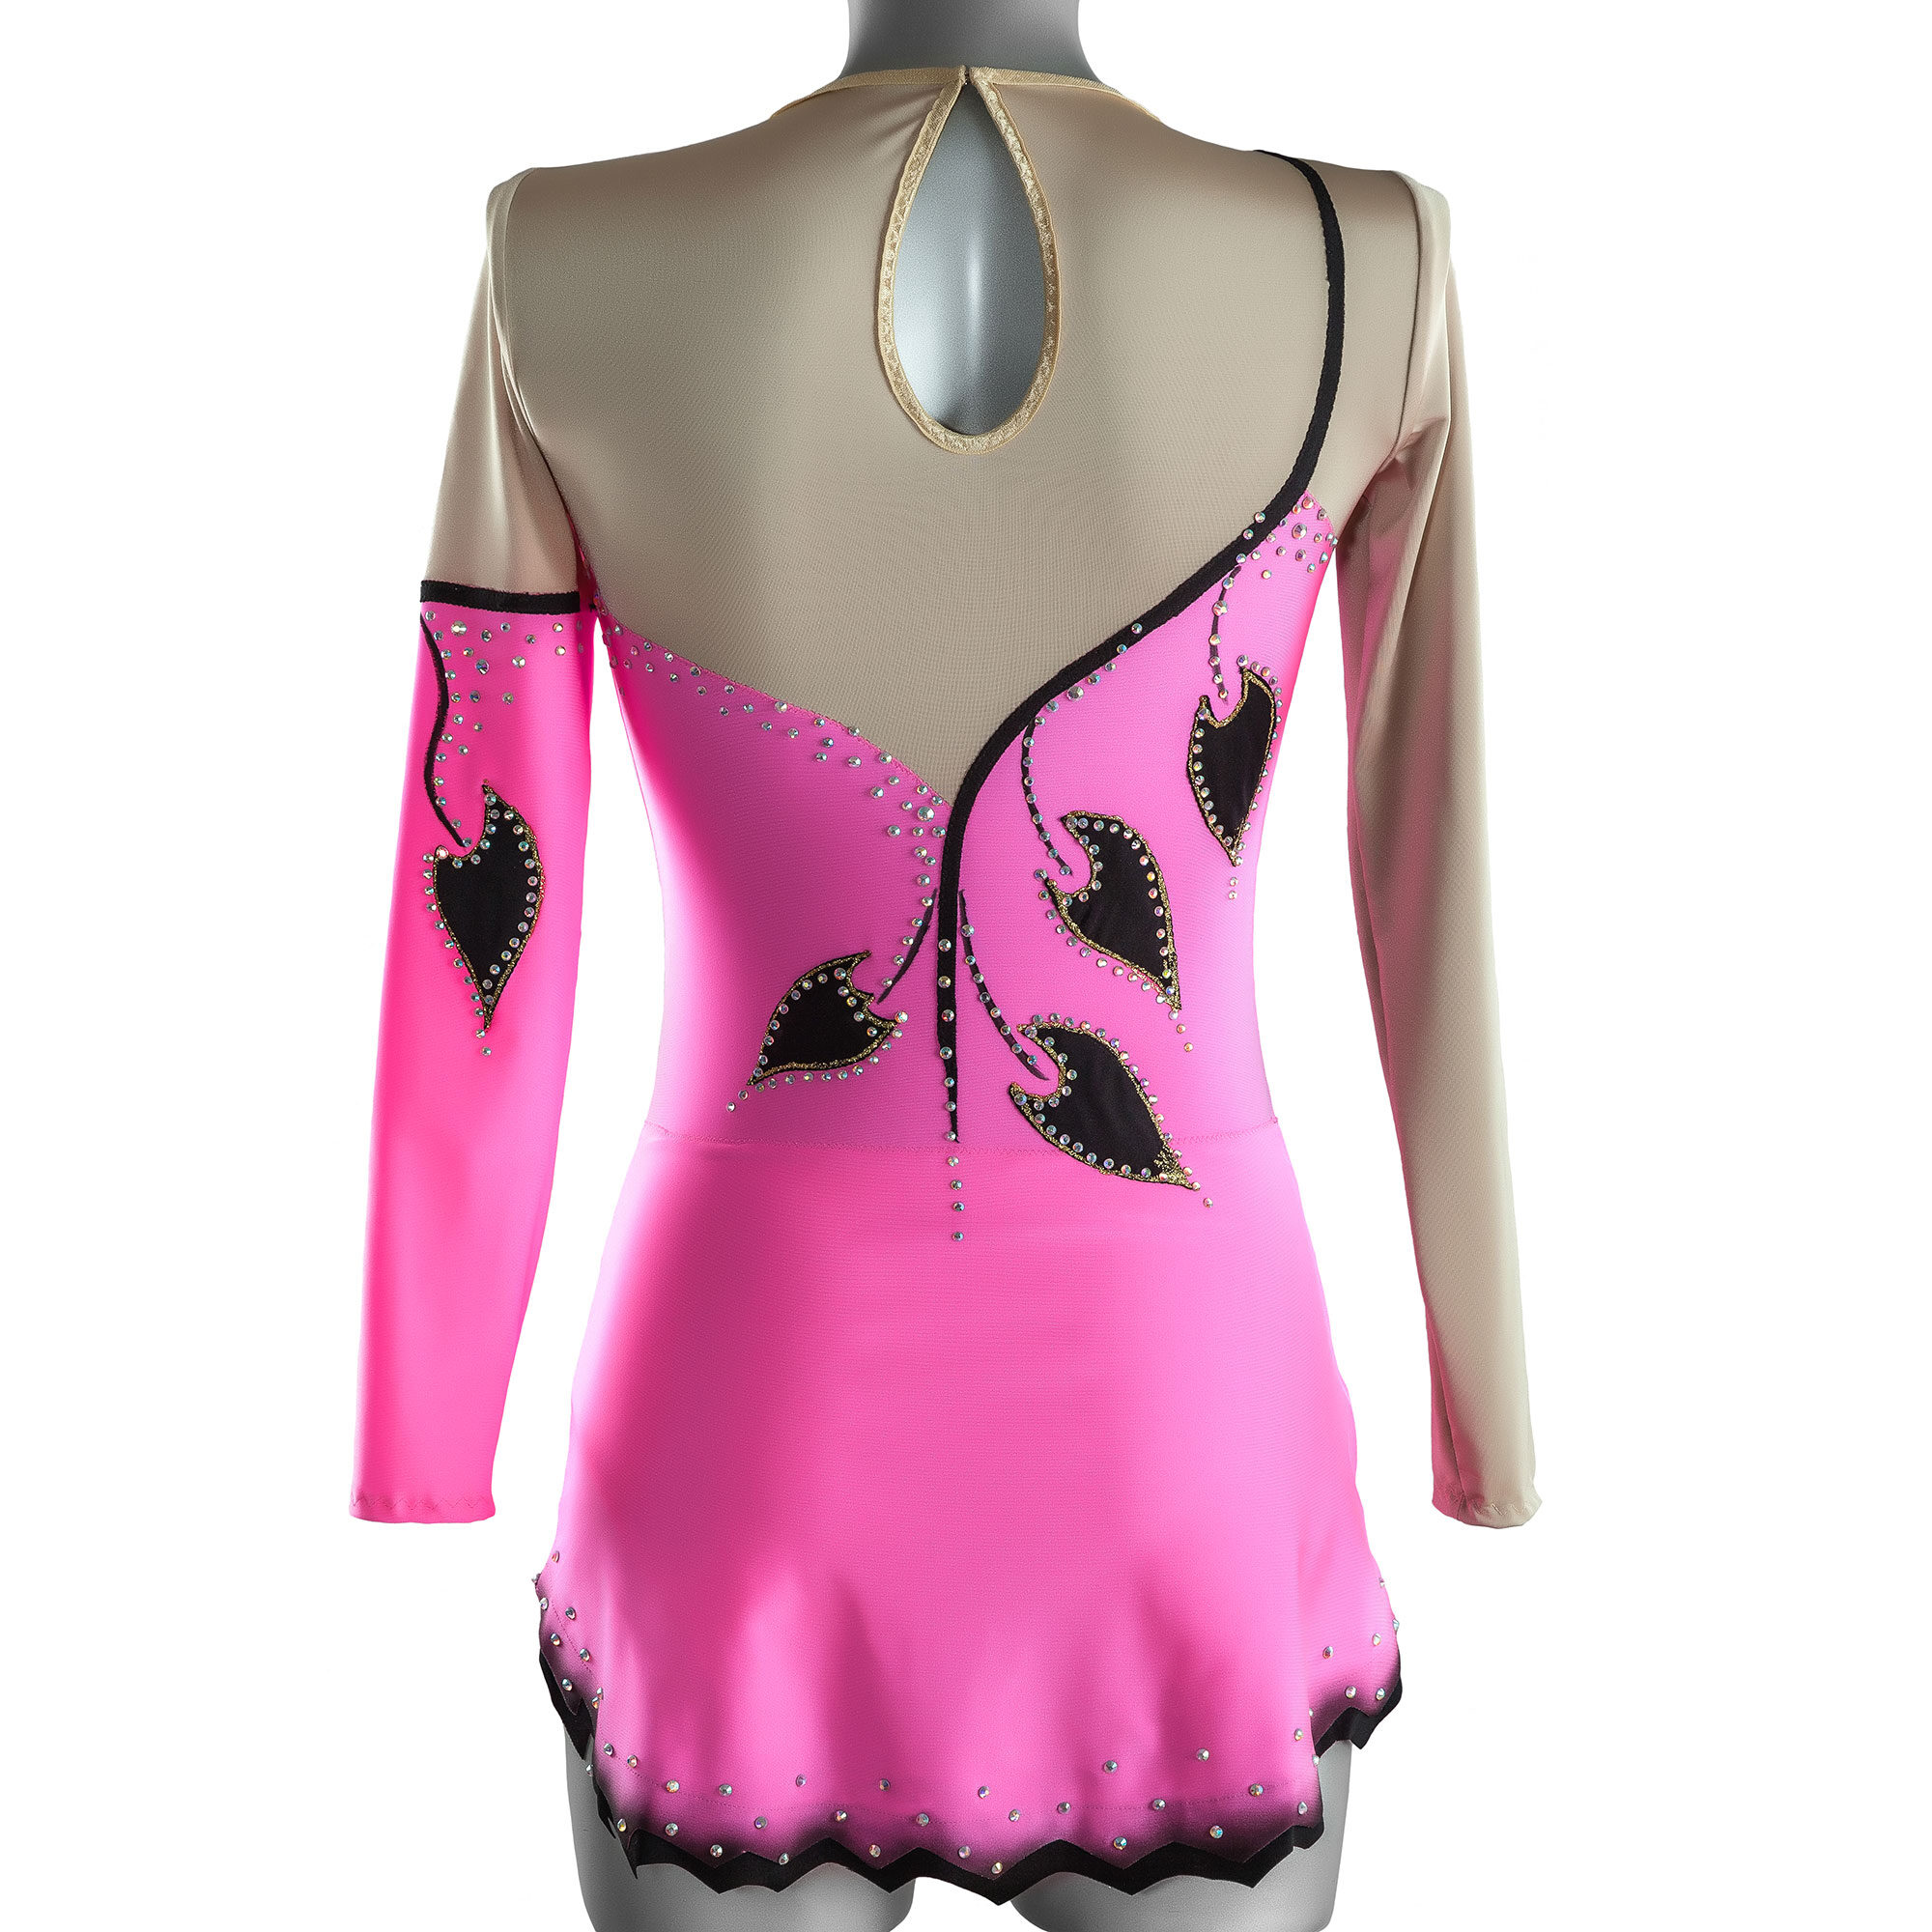 Pink Rhythmic Gymnastics Leotard № 170 could be sewn as Dress Rhythmic Gymnastics, Ice Figure Skating Dress, Costume Acrobatic Gymnastics, Baton Twirling or Dance Leotard Suit. Decorated with large leaves inserts